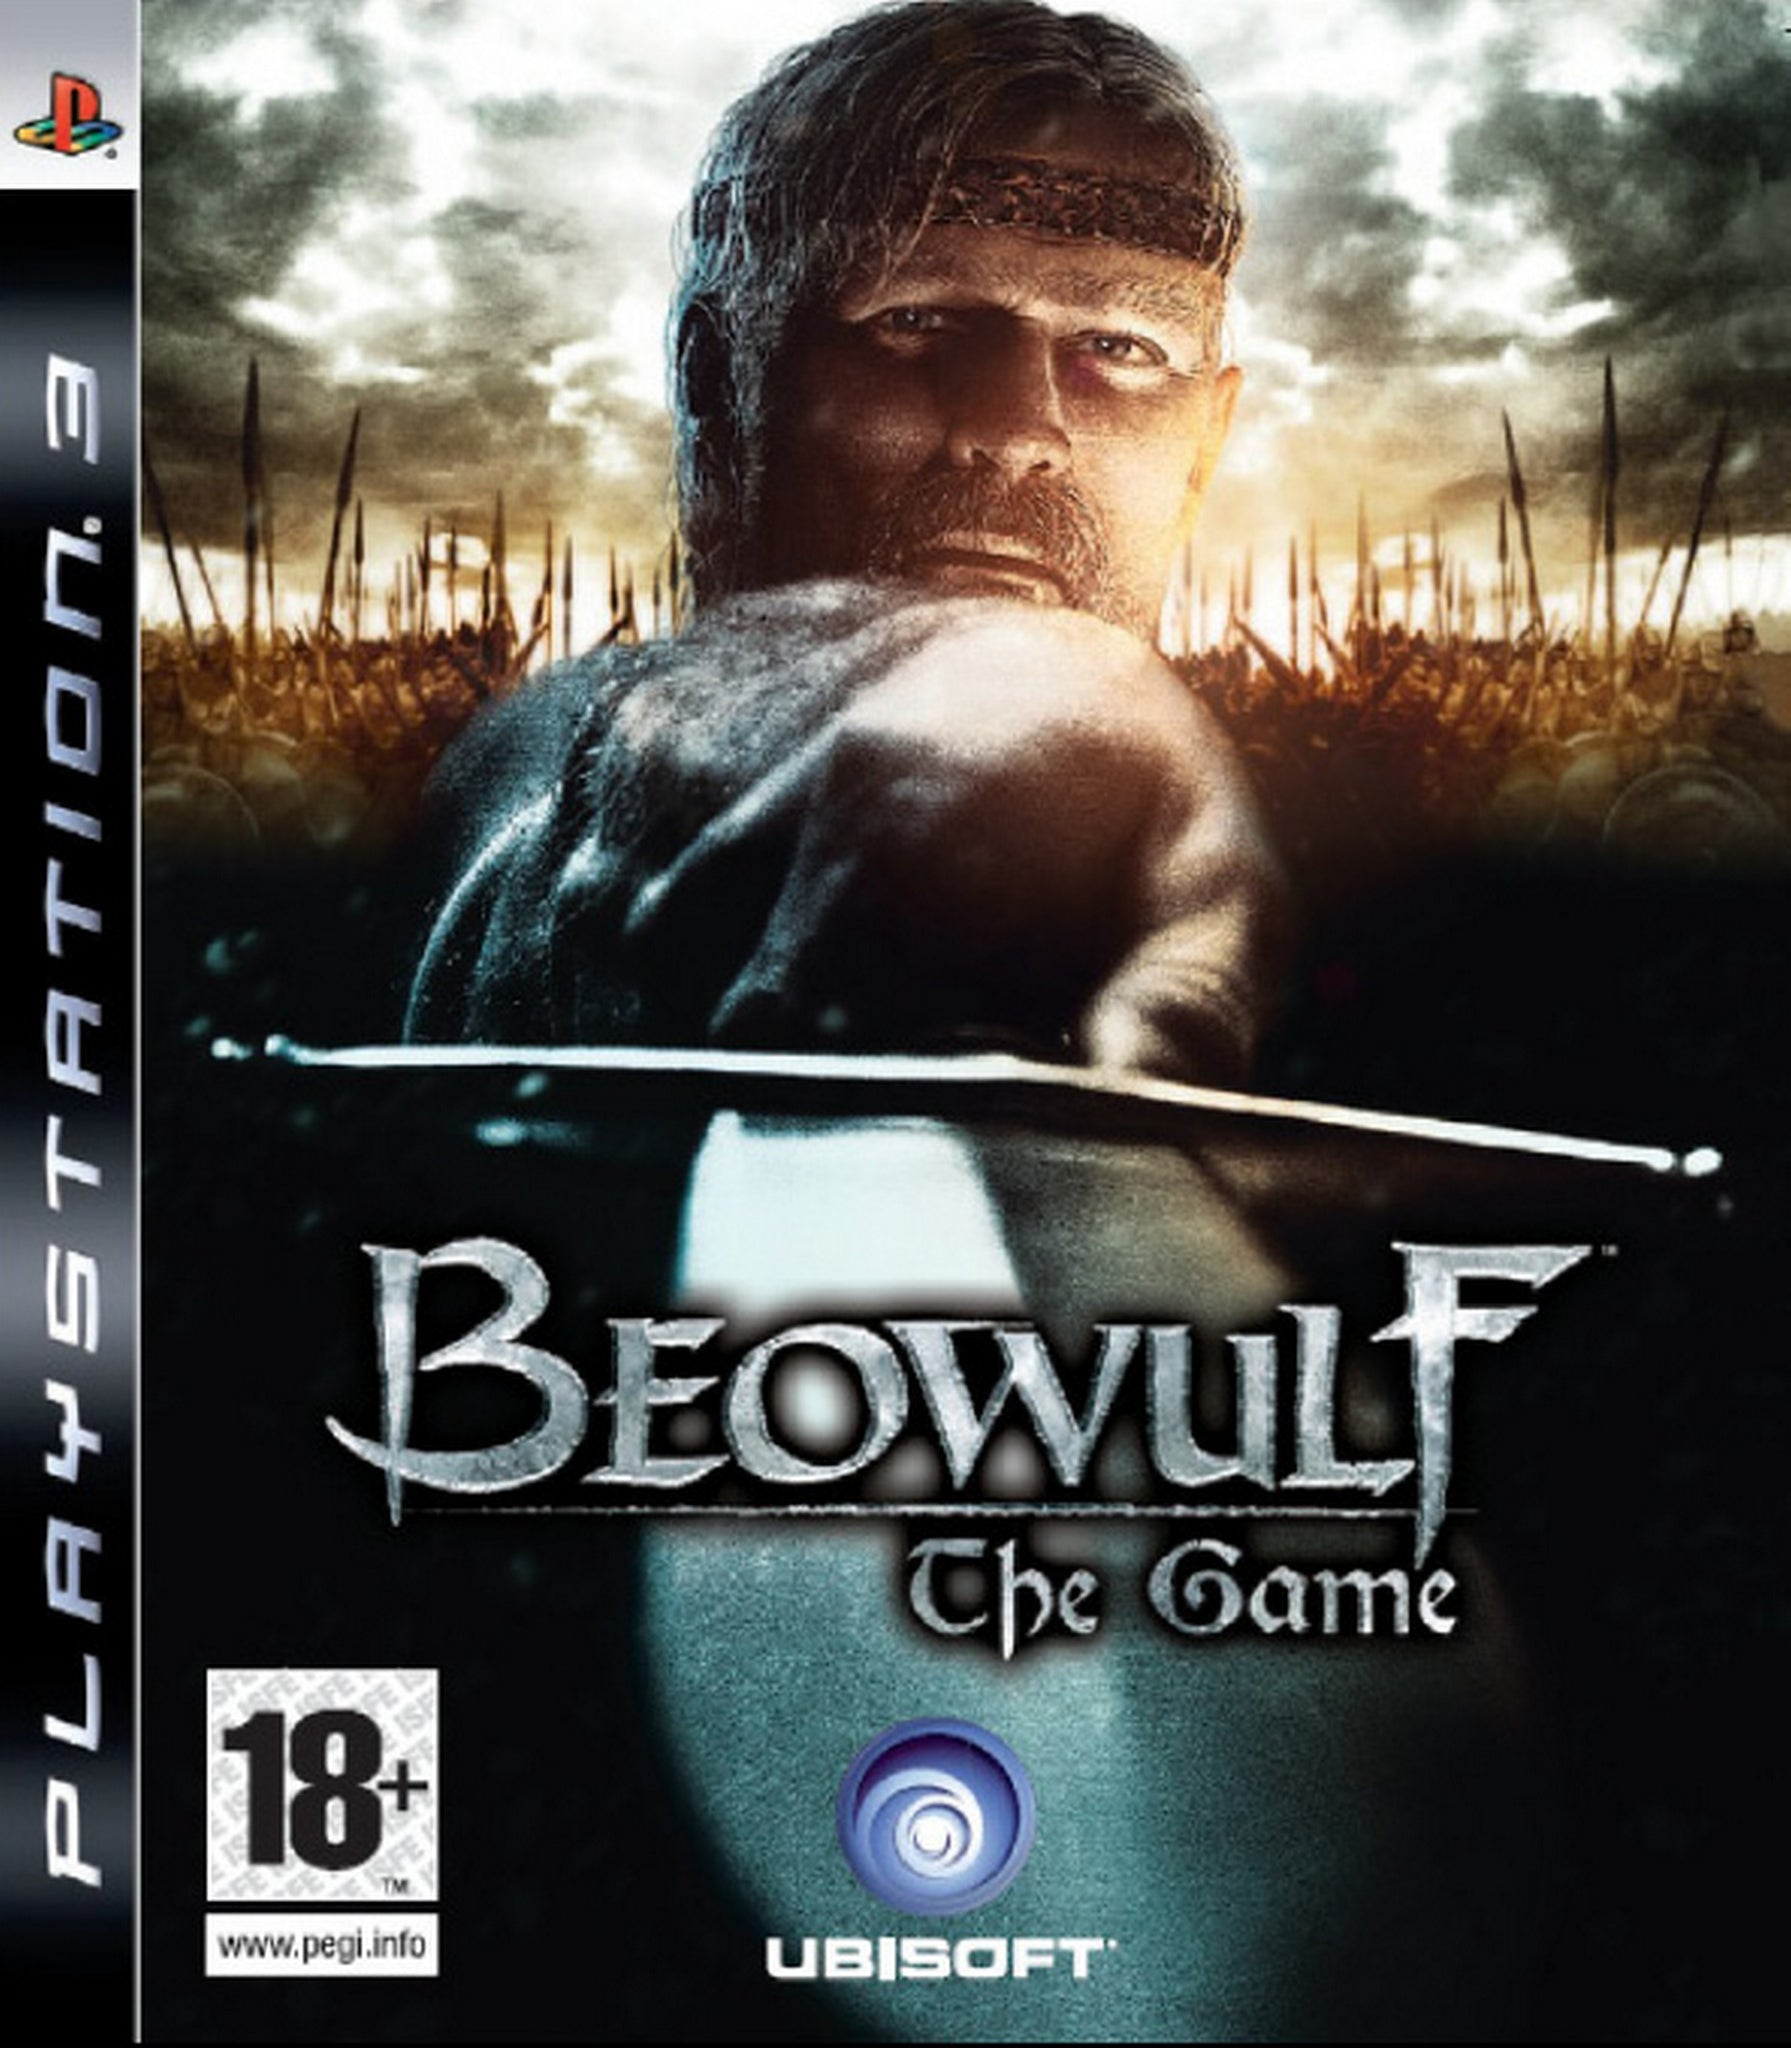 Beowulf The Game - PS3 (Pre-owned)